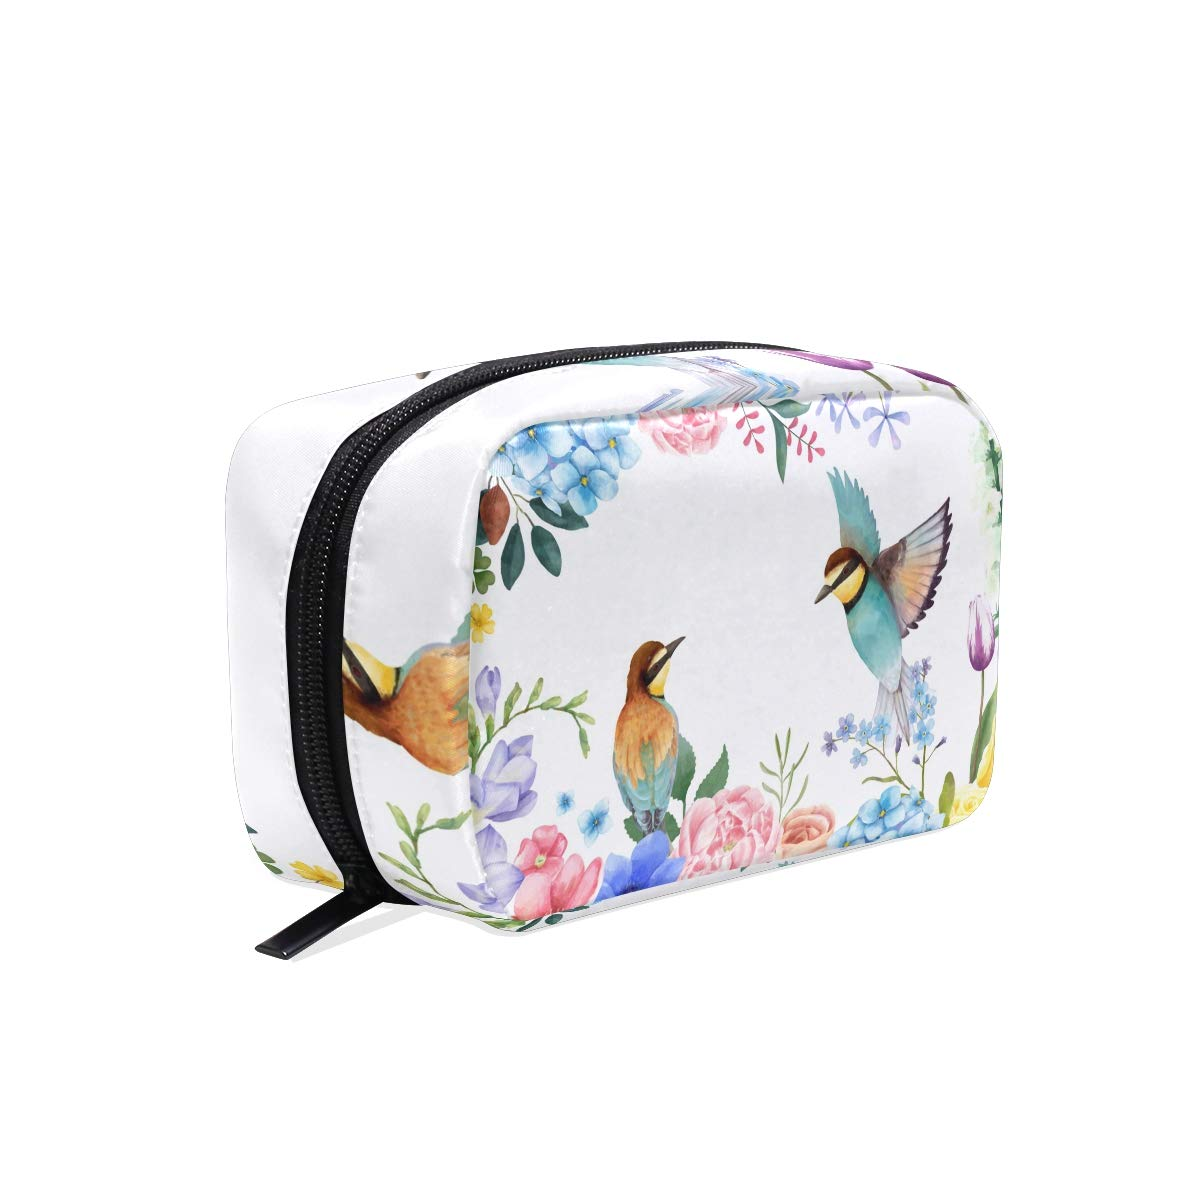 Makeup Bag Toiletry Bag Cosmetic Bags Twins Birds Storage Bag for Women Skincare Cosmetic Pouch